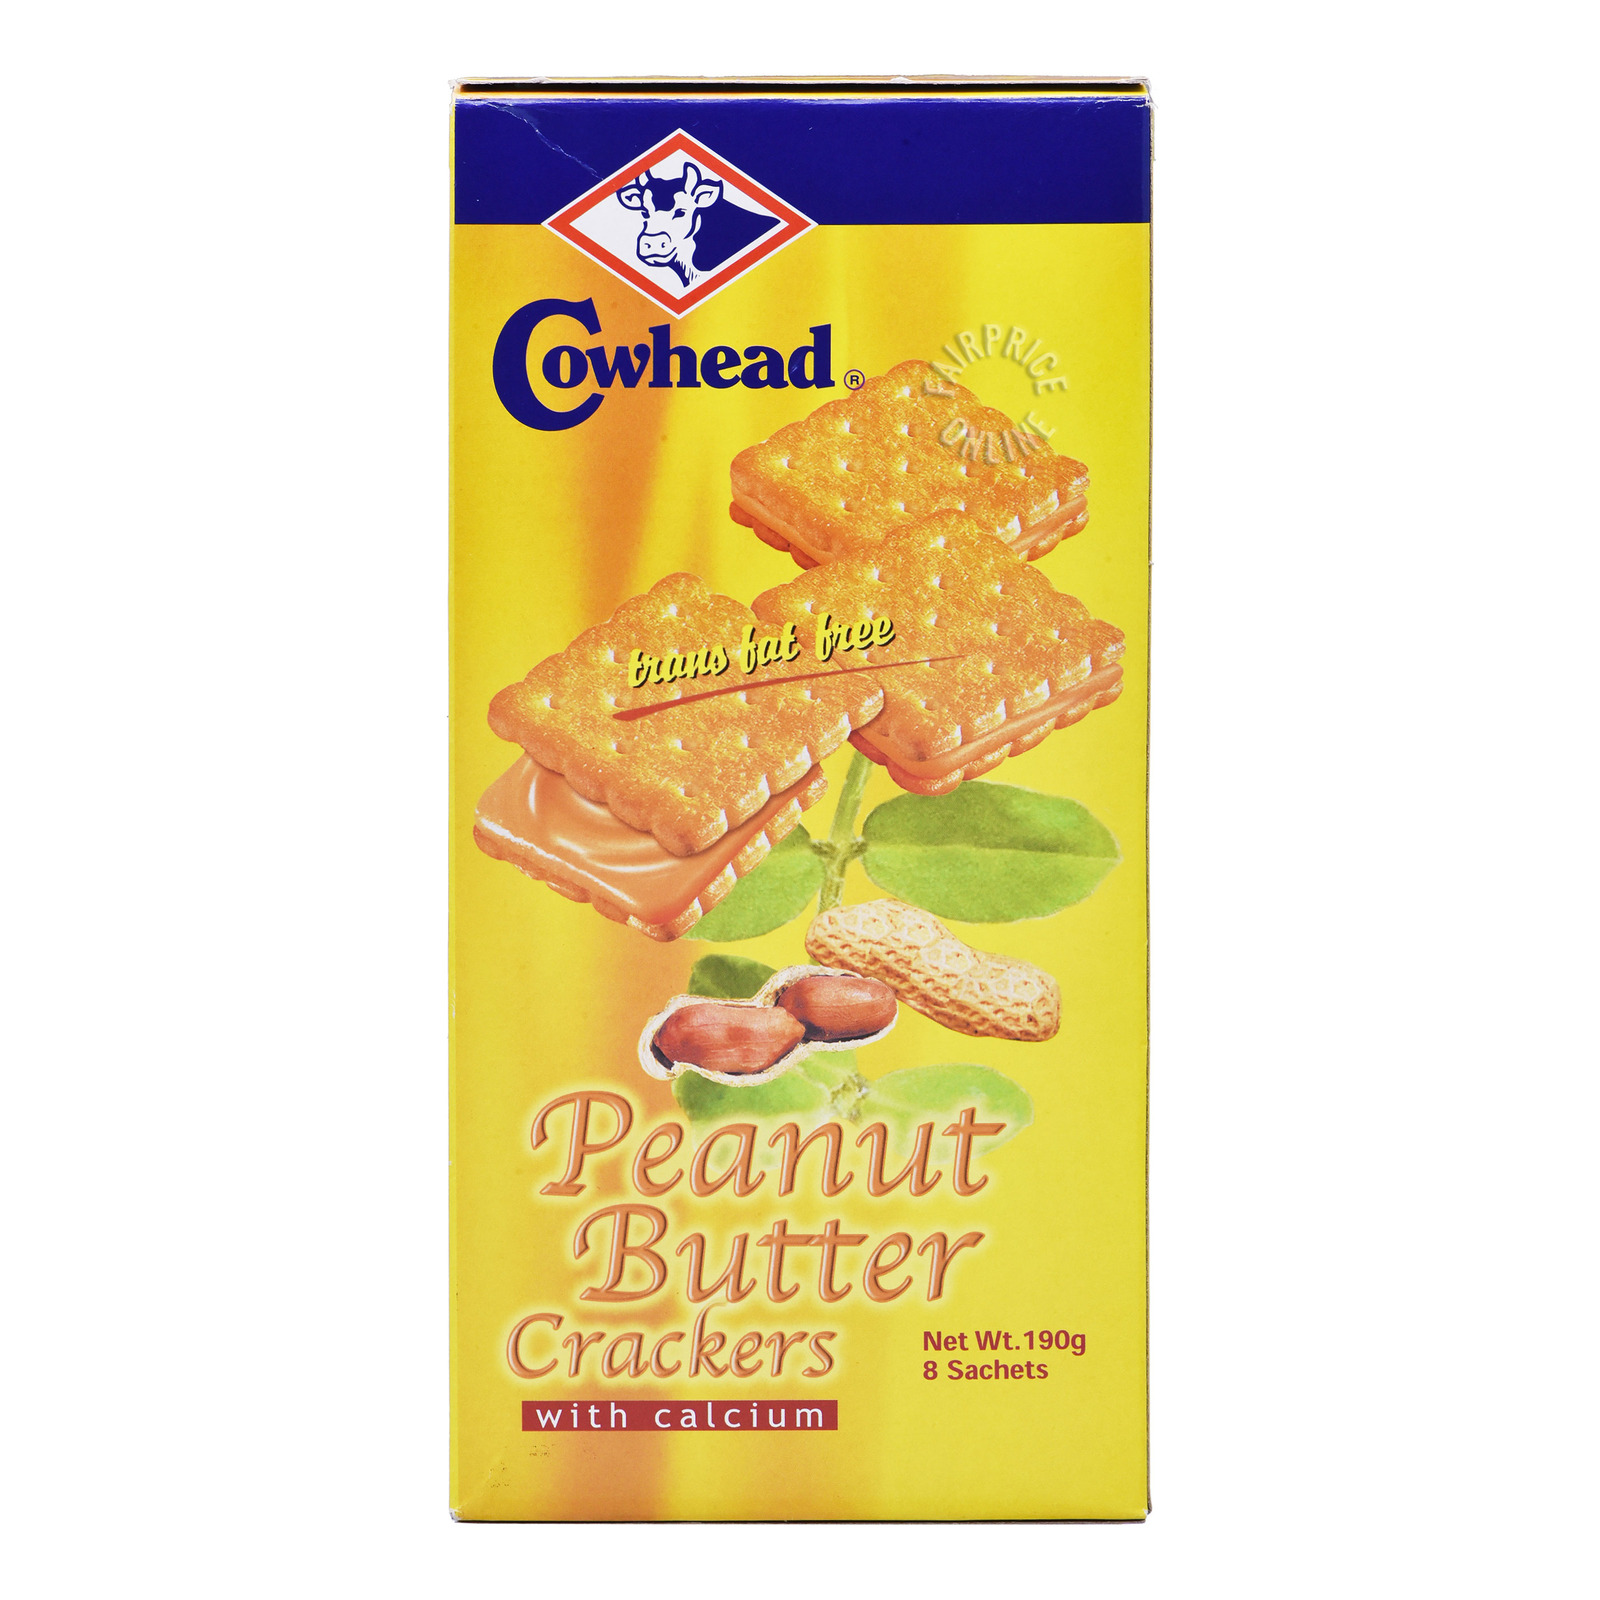 Cowhead Sandwich Crackers with Calcium-PeanutButter